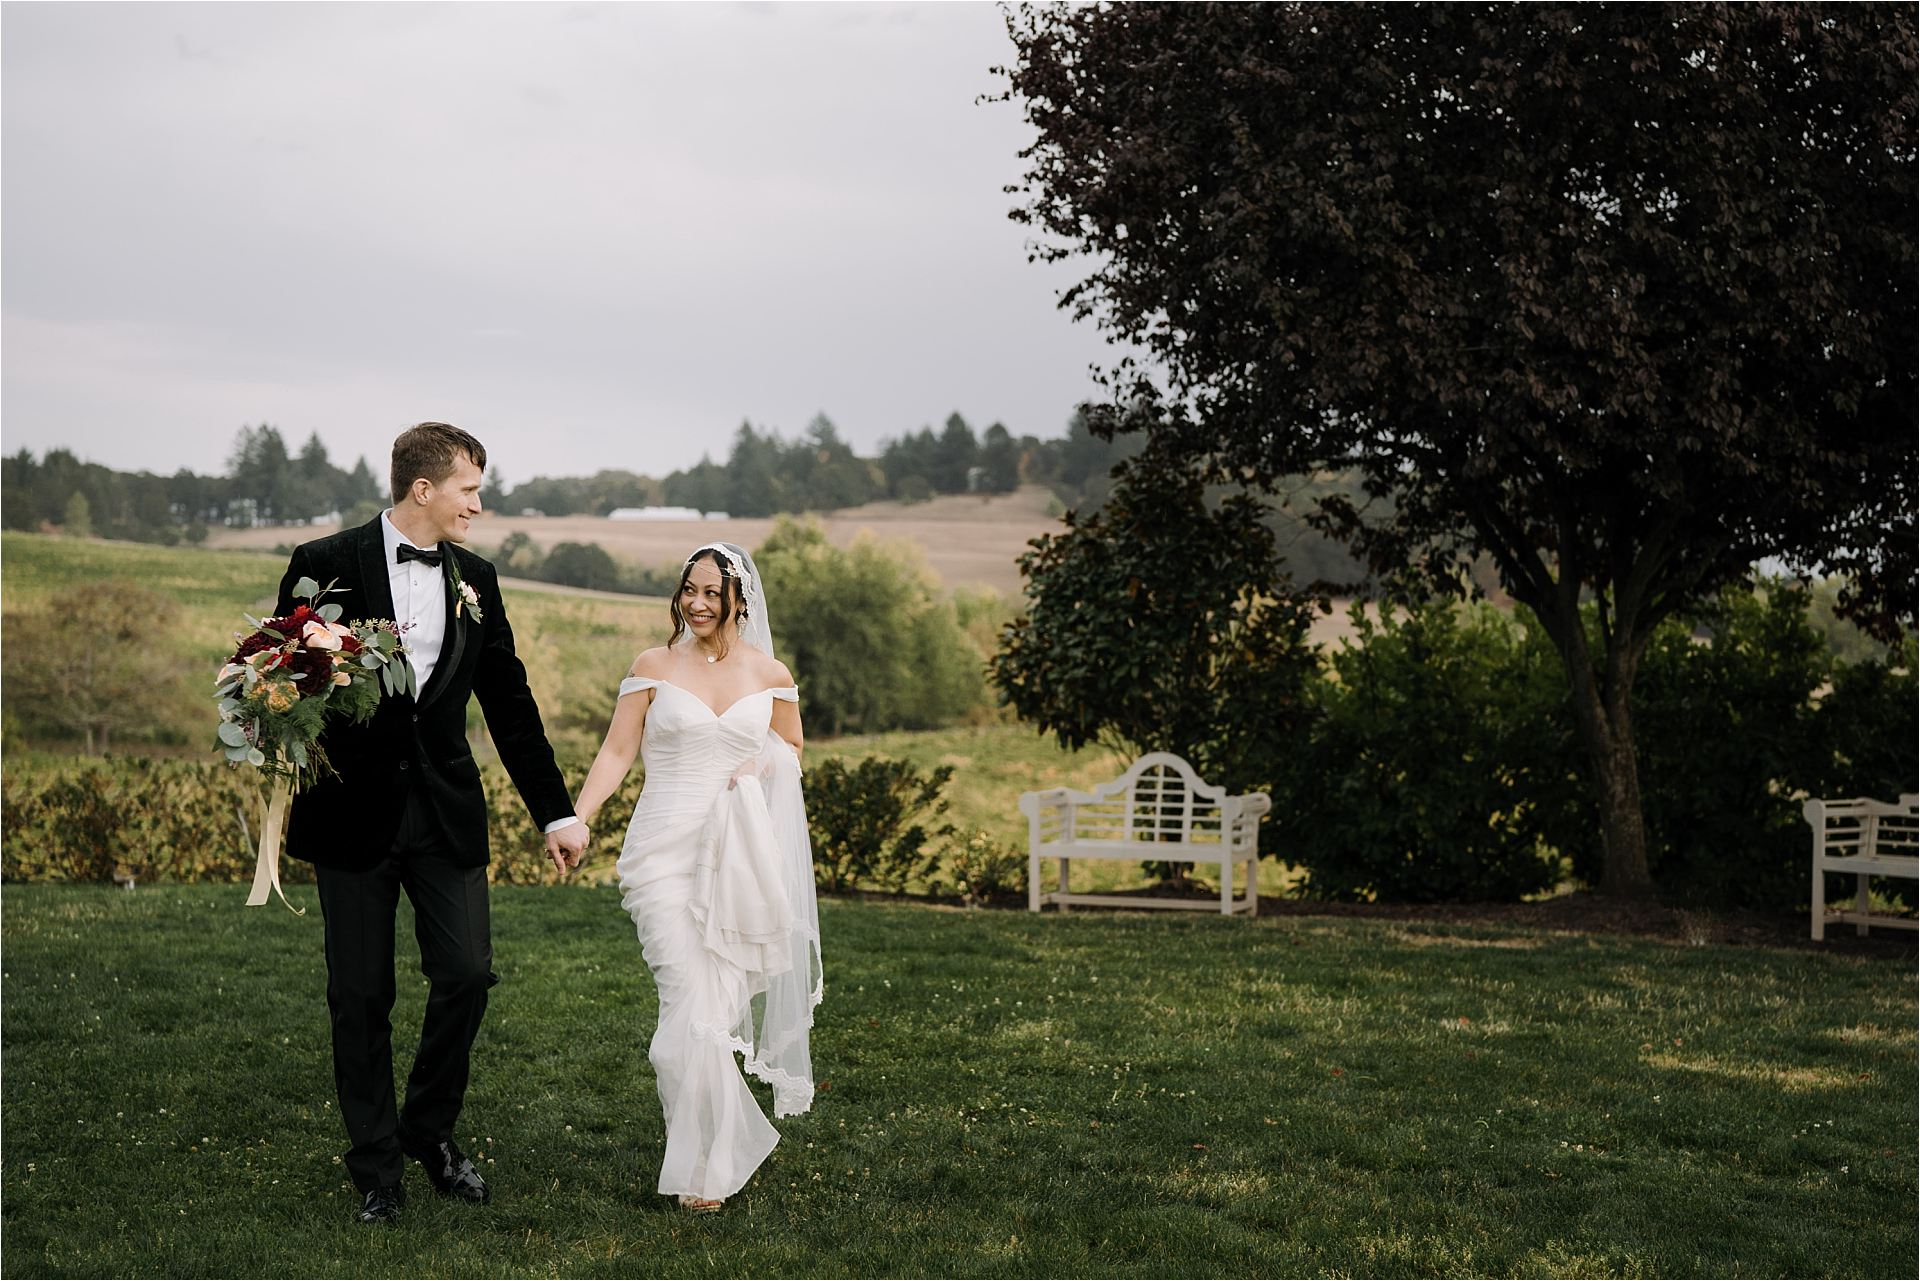 Bride and groom after the ceremony during zenith vineyard wedding